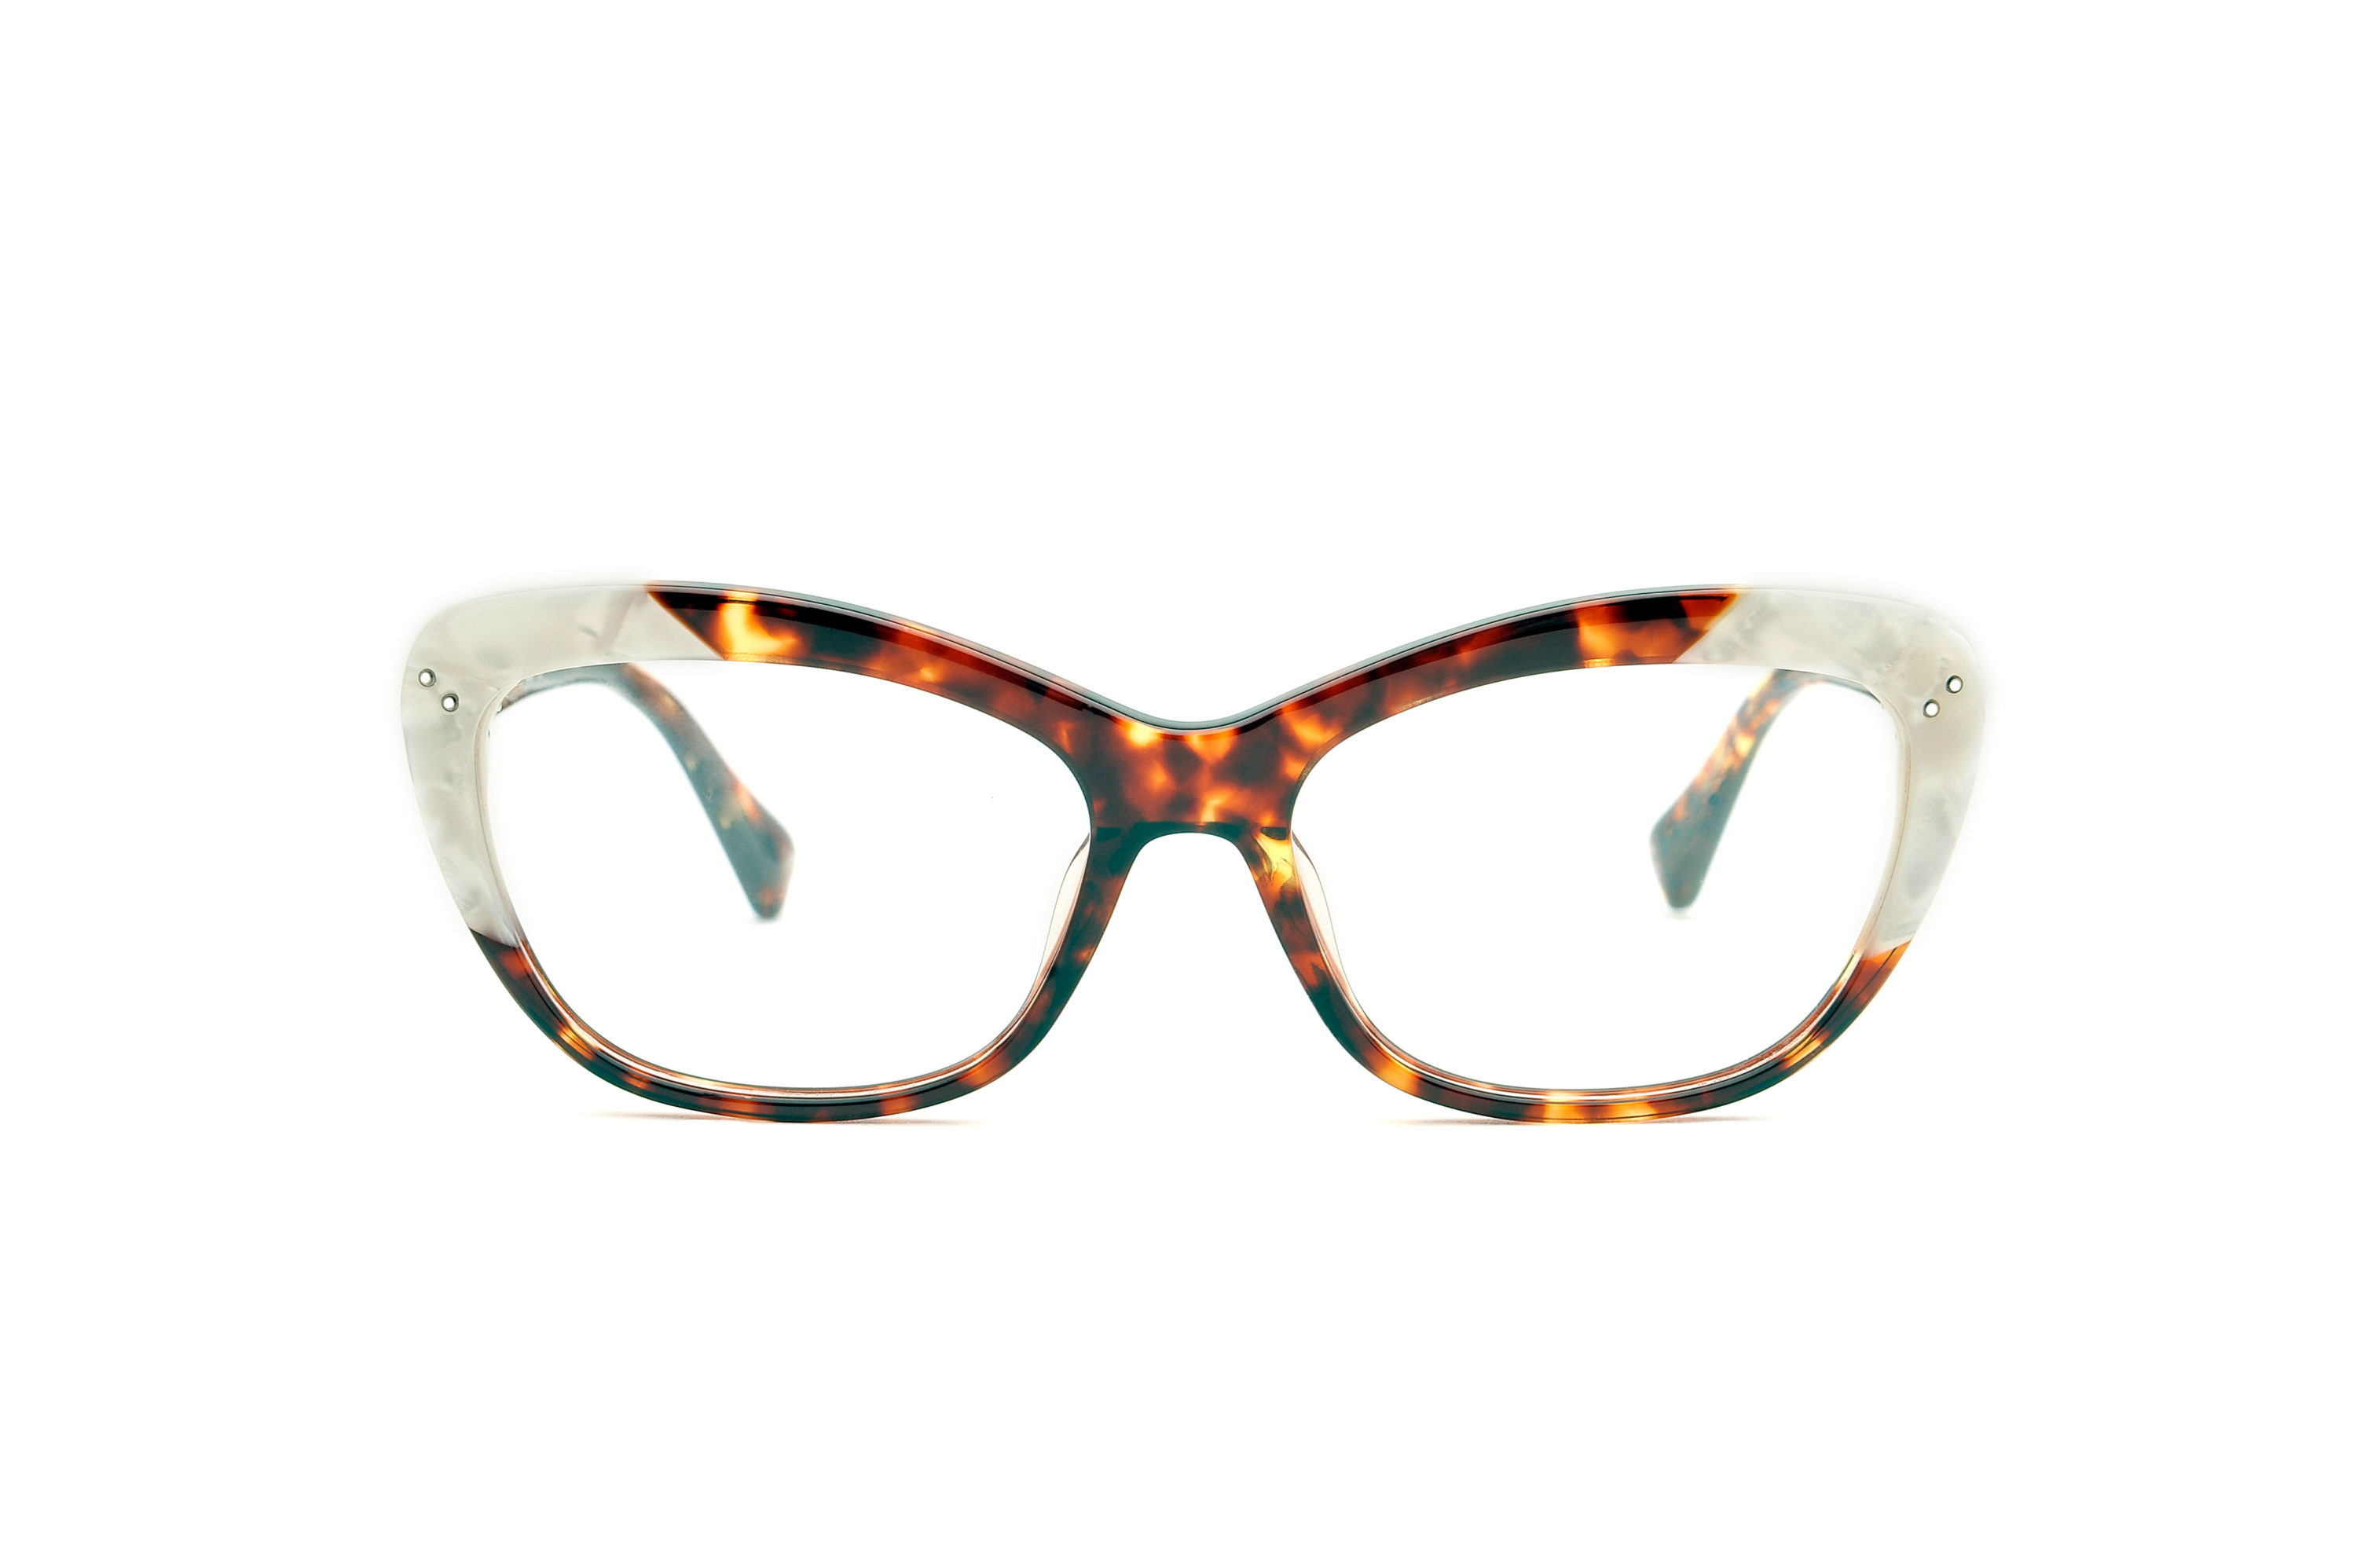 Sunshine acetate cat eye tortoise sunglasses by GIGI Studios